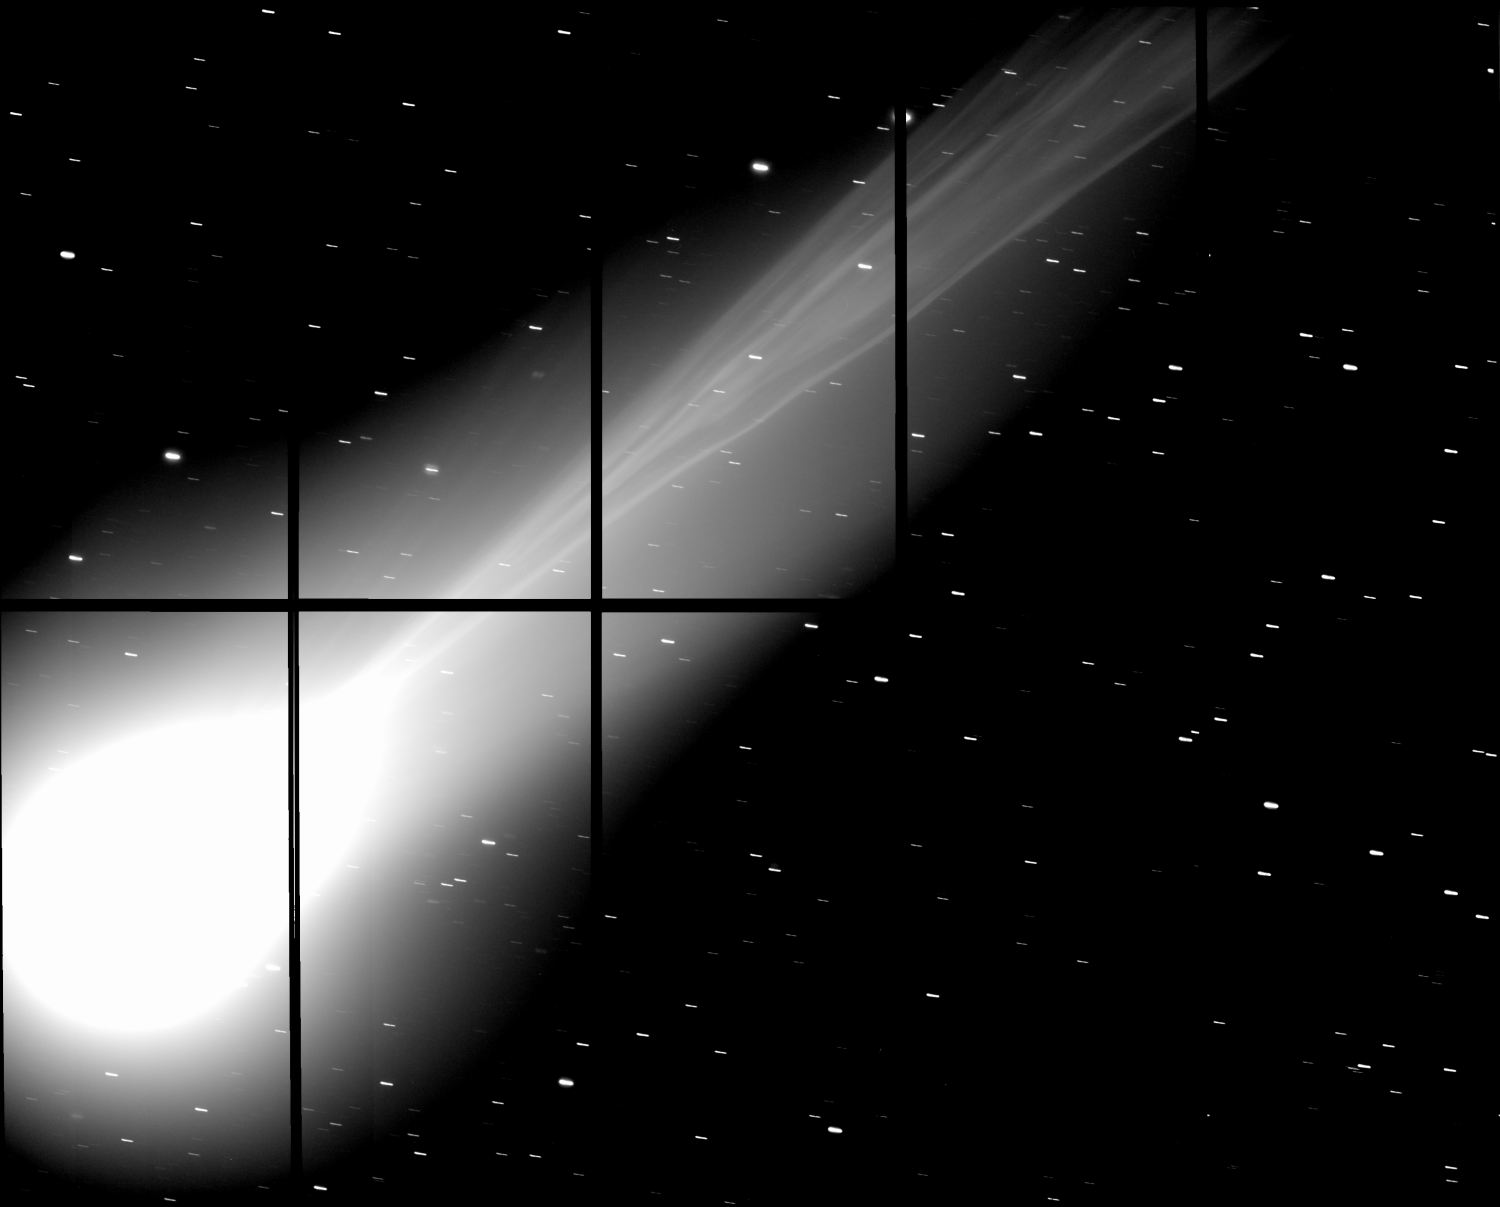 Details in the tail of Comet Lovejoy as captured by the Subaru Telescope's wide-field, prime-focus camera, called Suprime-Cam, on December 3, 2013. Click here for details on how to see Comet Lovejoy in December, 2013.